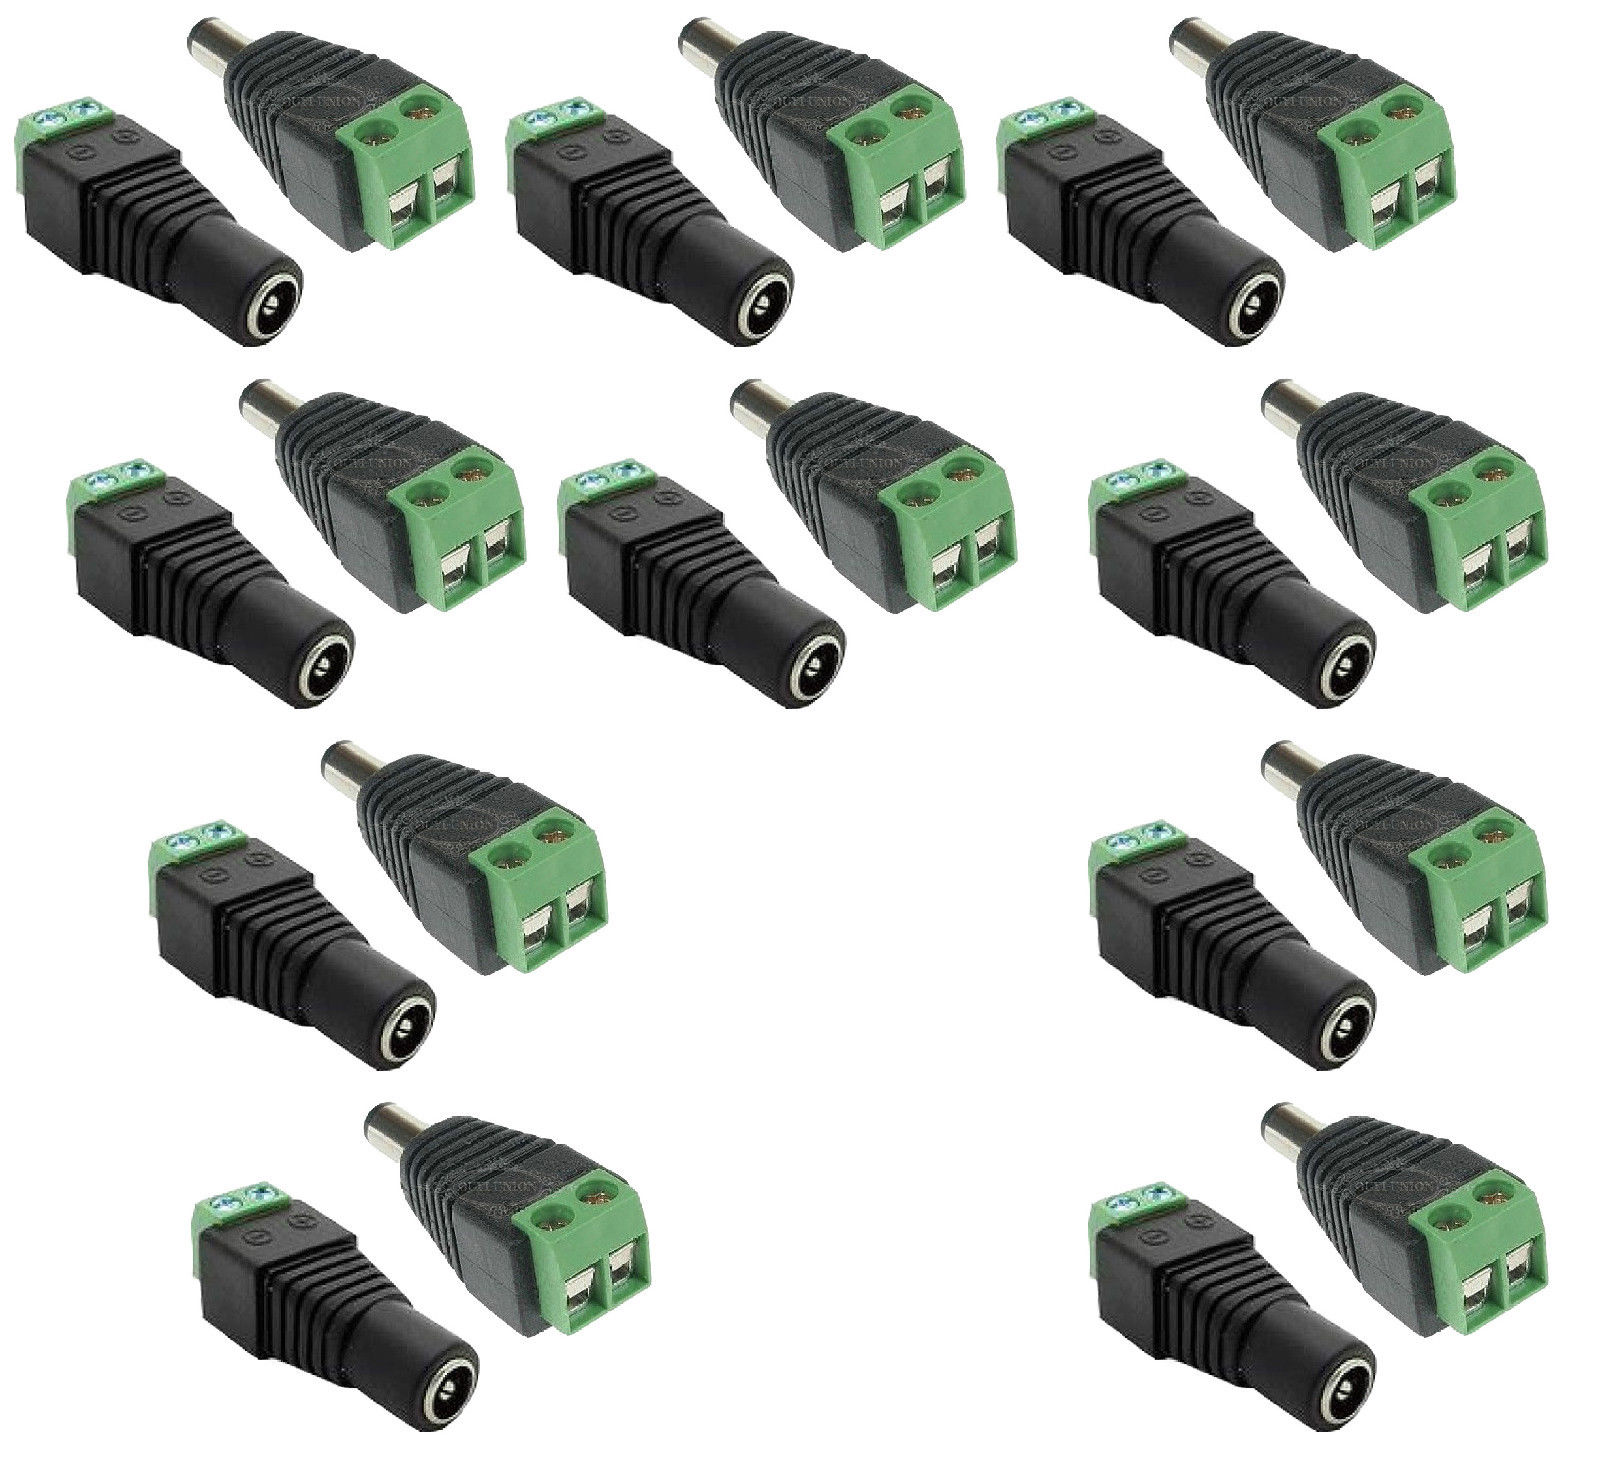 10 Pairs Male And Female 2.1x5.5mm 12V DC Power Jack Plug Adapter Connector CCTV zinuo 1pc dc power jack splitter adapter connector cable 1 dc female to 2 3 4 5 6 male plug for cctv camera led strip light